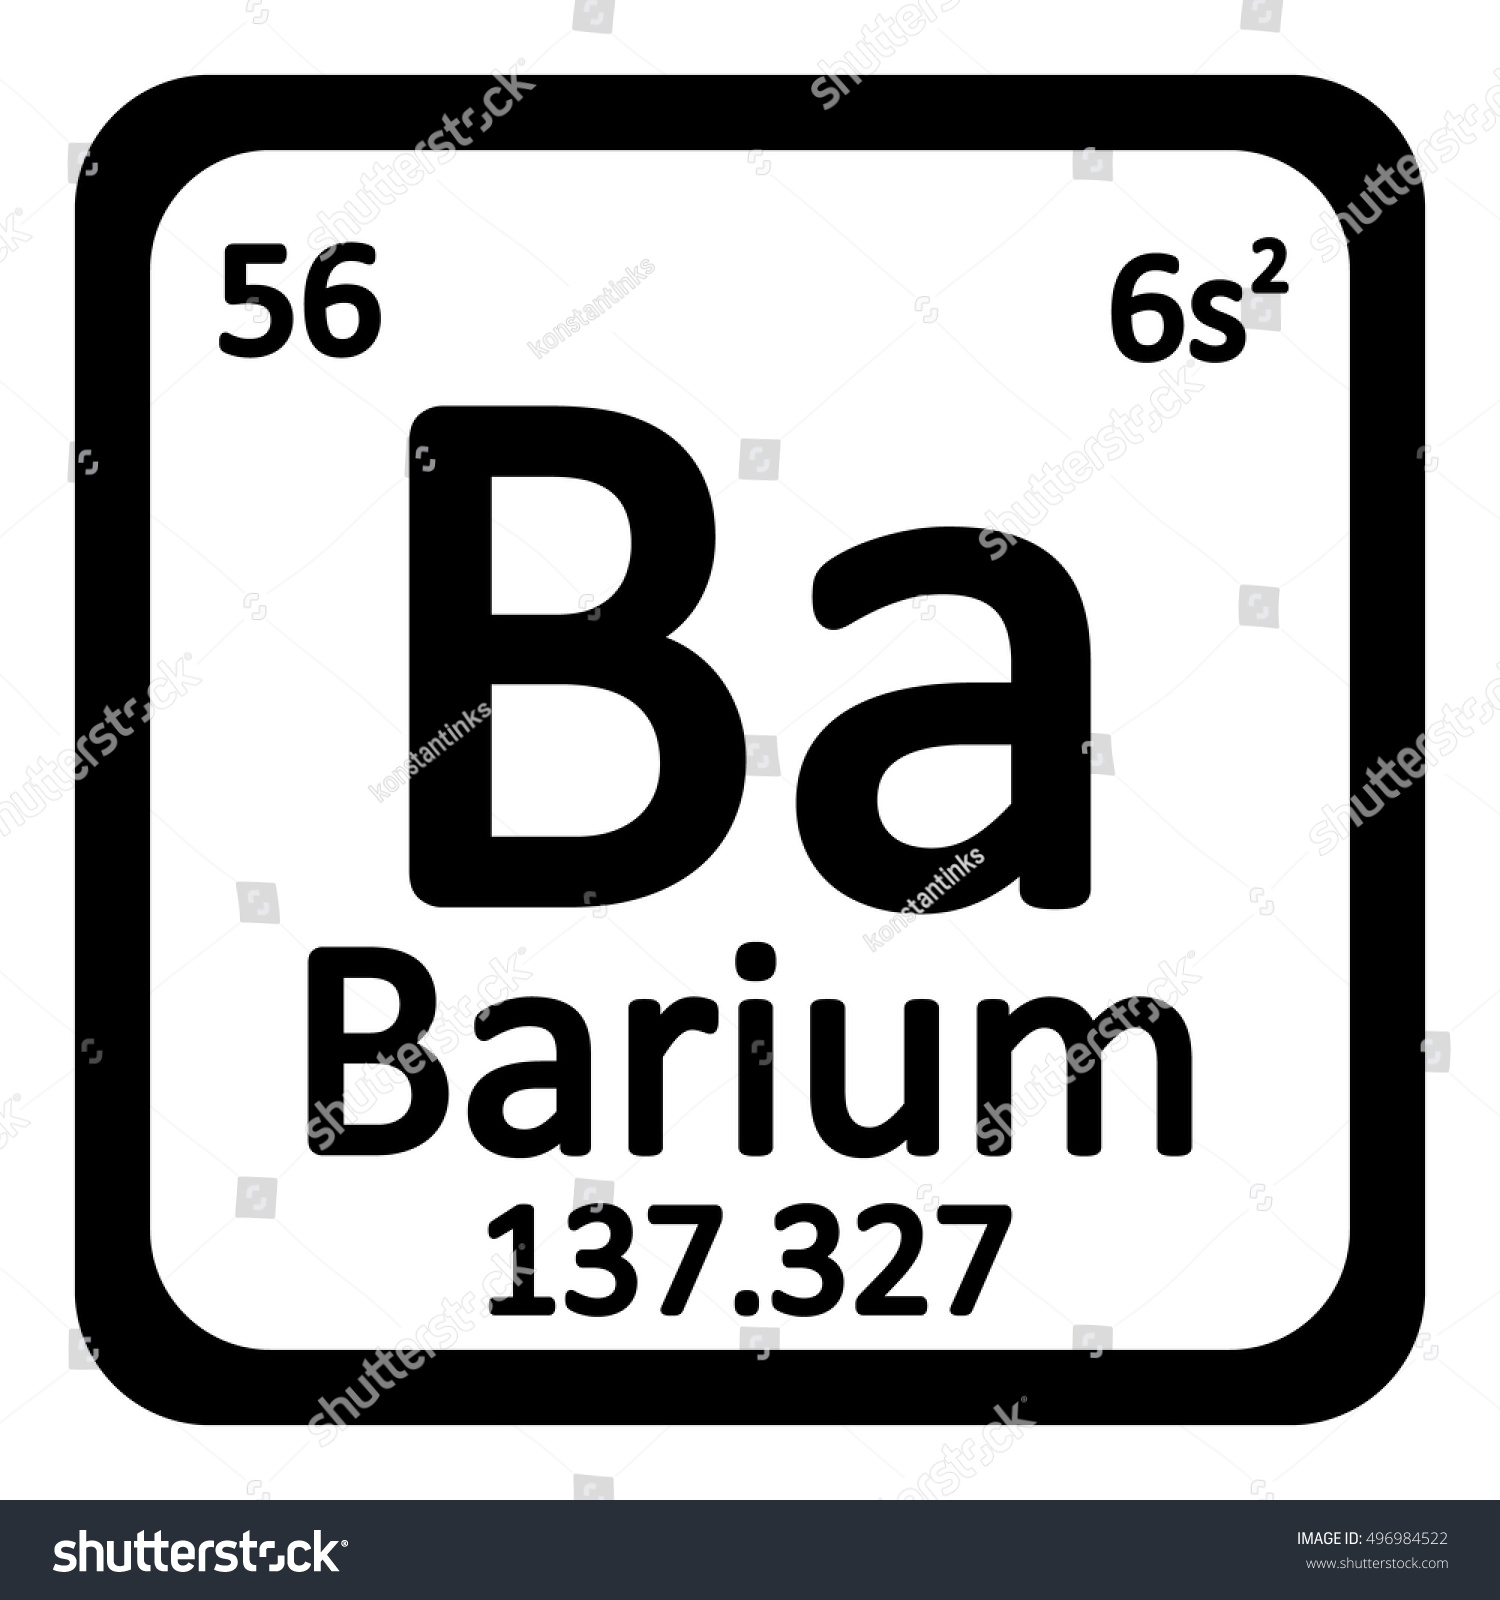 What is the symbol for barium on the periodic table choice image what is the symbol for barium on the periodic table images where is barium on the gamestrikefo Image collections